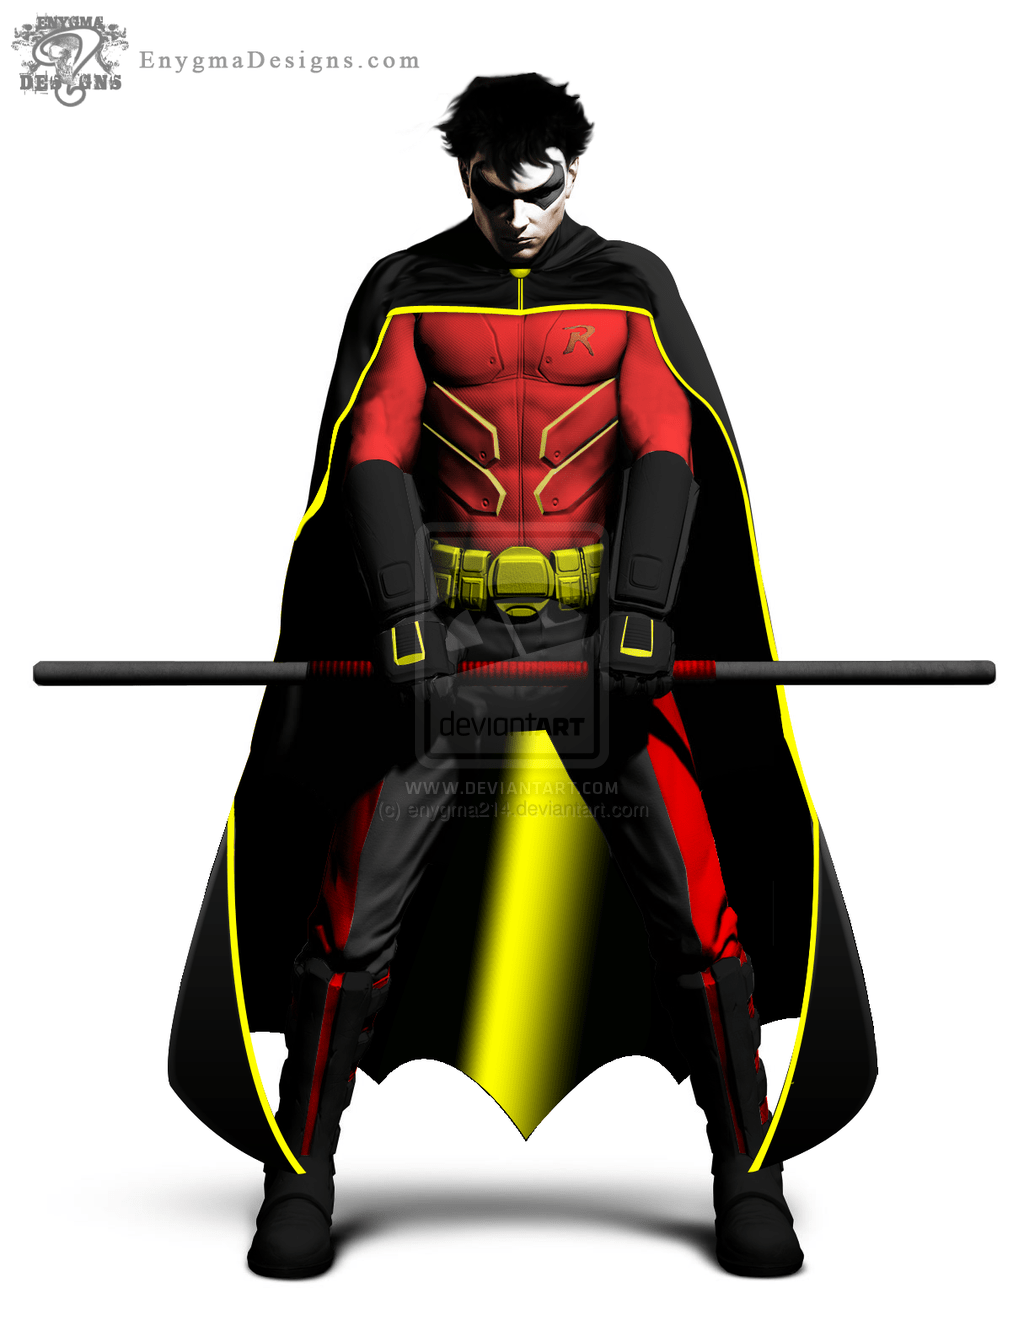 Robin - Tim Drake (Batman Arkham City) by enygma214.deviantart.com on @DeviantArt | hero designs ...